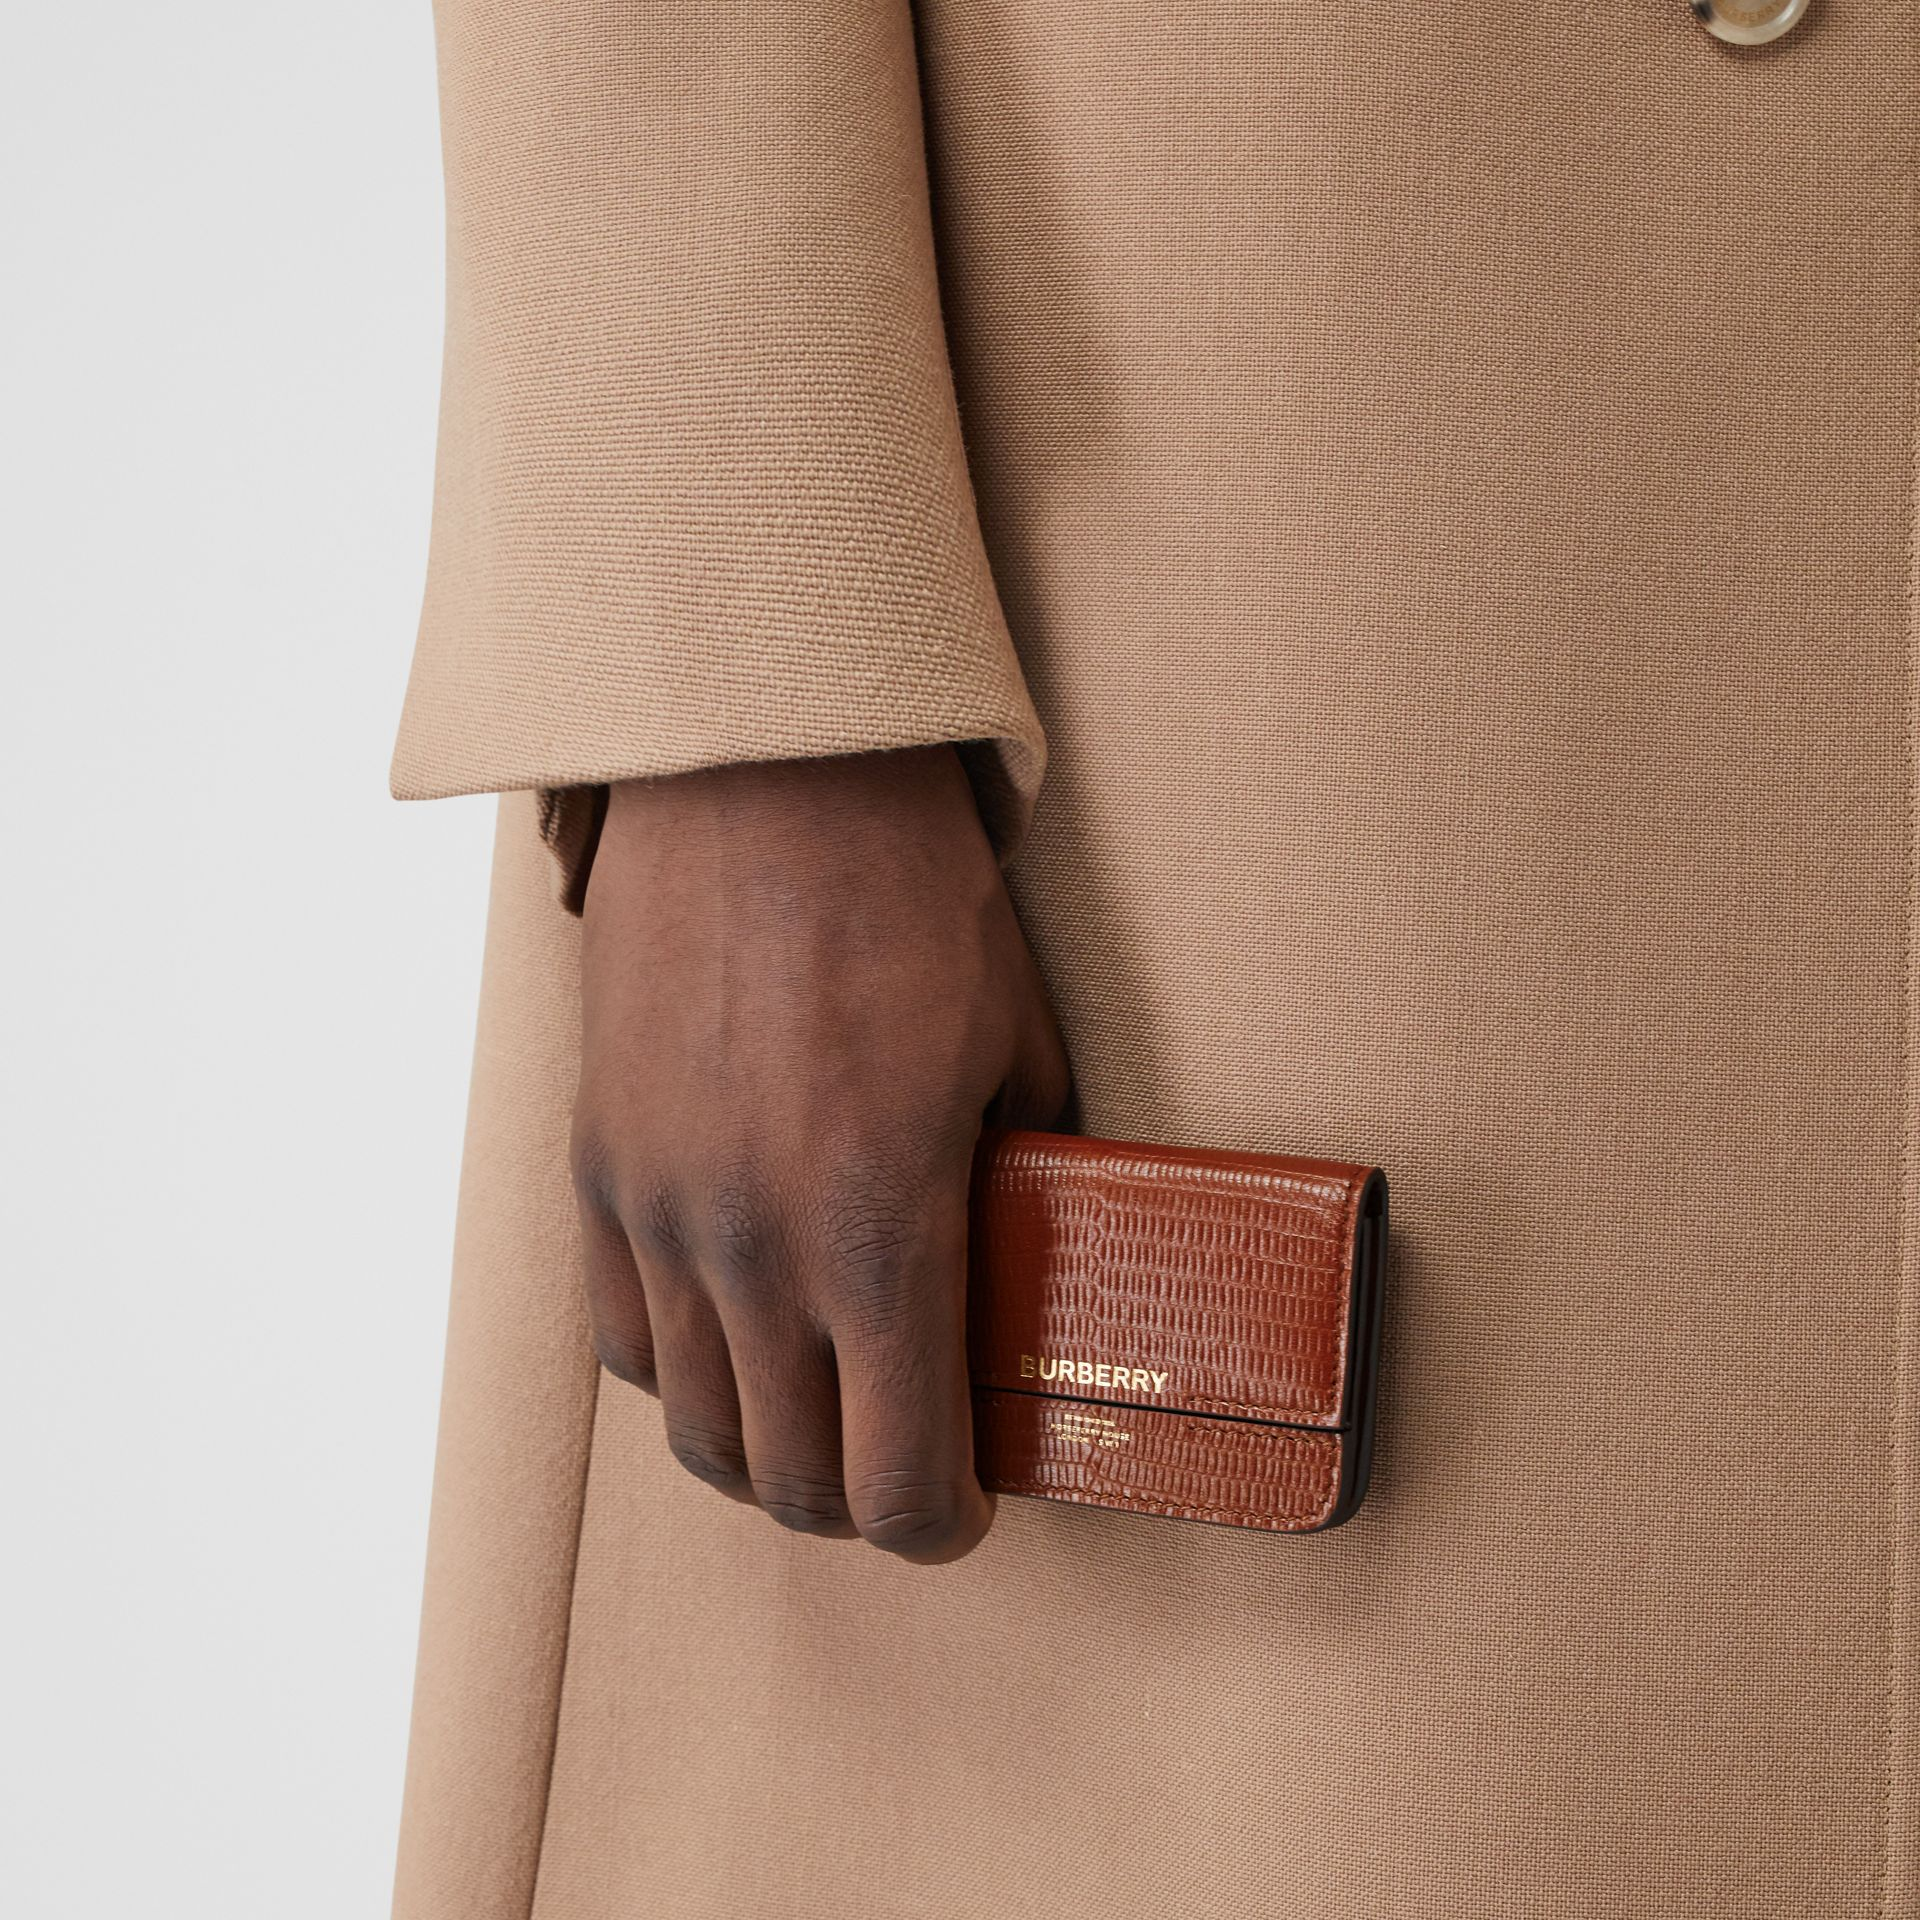 Embossed Deerskin Card Case with Chain Strap in Tan - Women | Burberry - gallery image 3